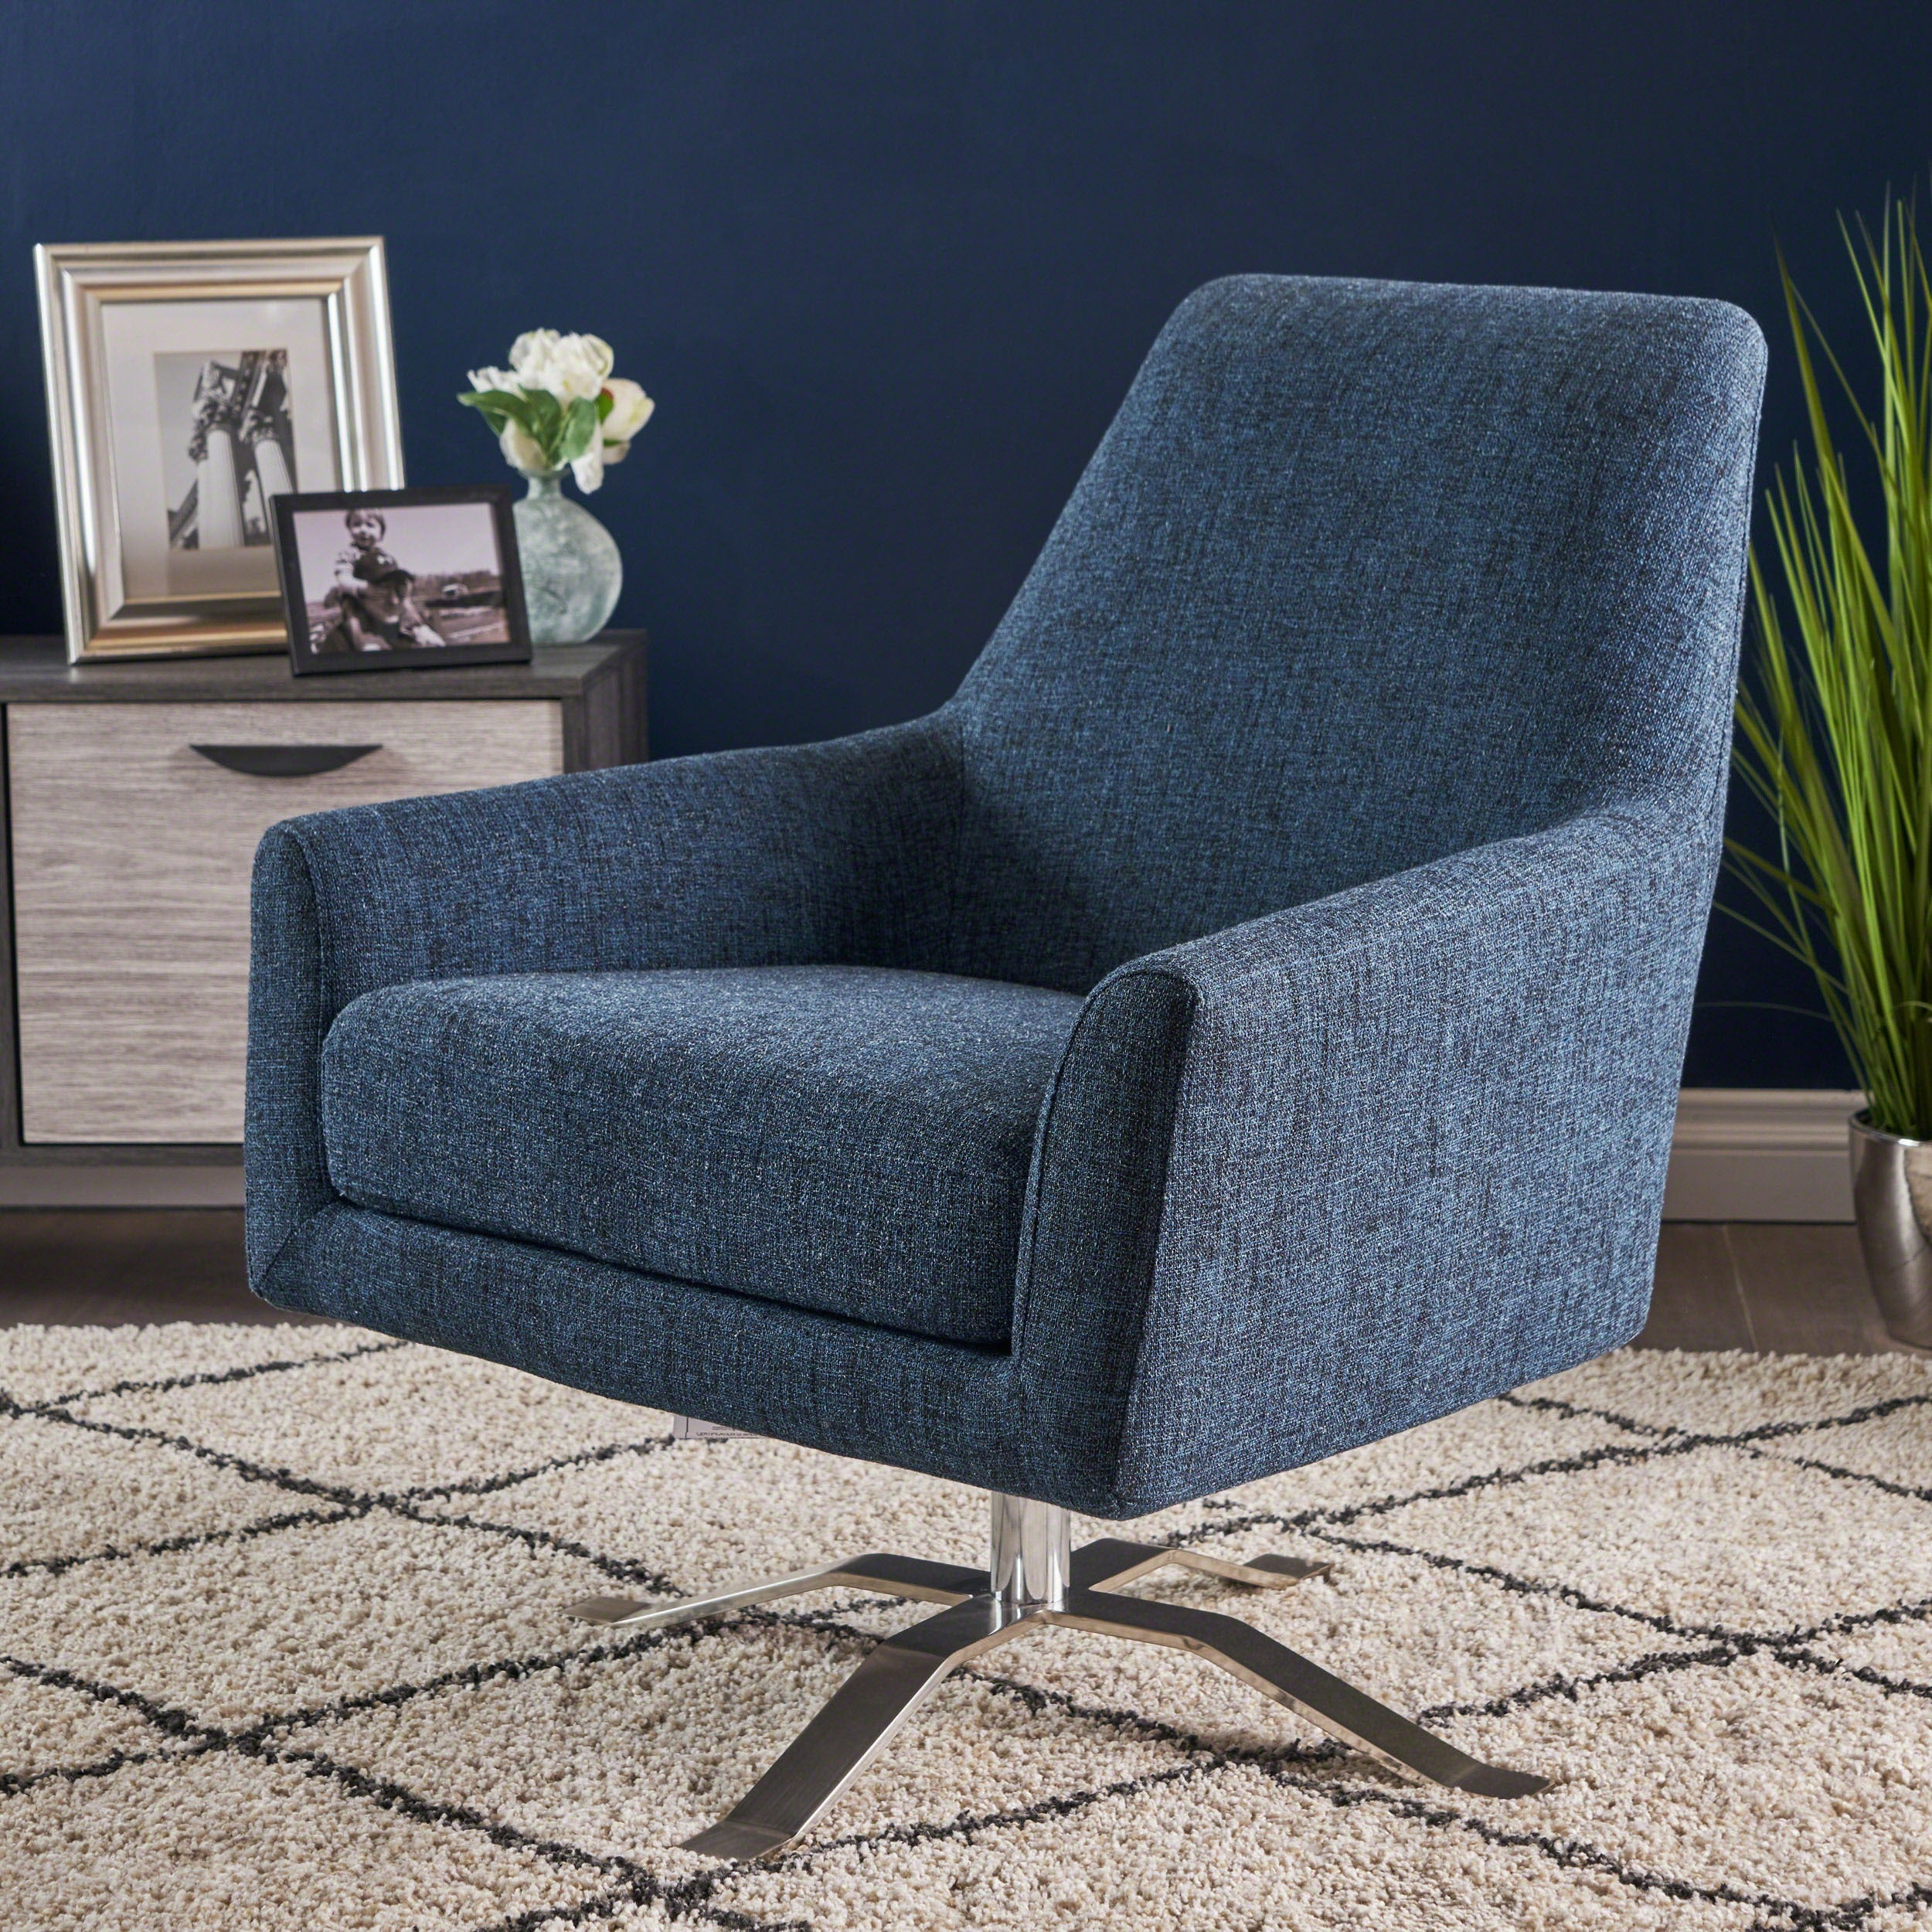 Astounding Ailis Modern Fabric Swivel Club Chair By Christopher Knight Home Theyellowbook Wood Chair Design Ideas Theyellowbookinfo